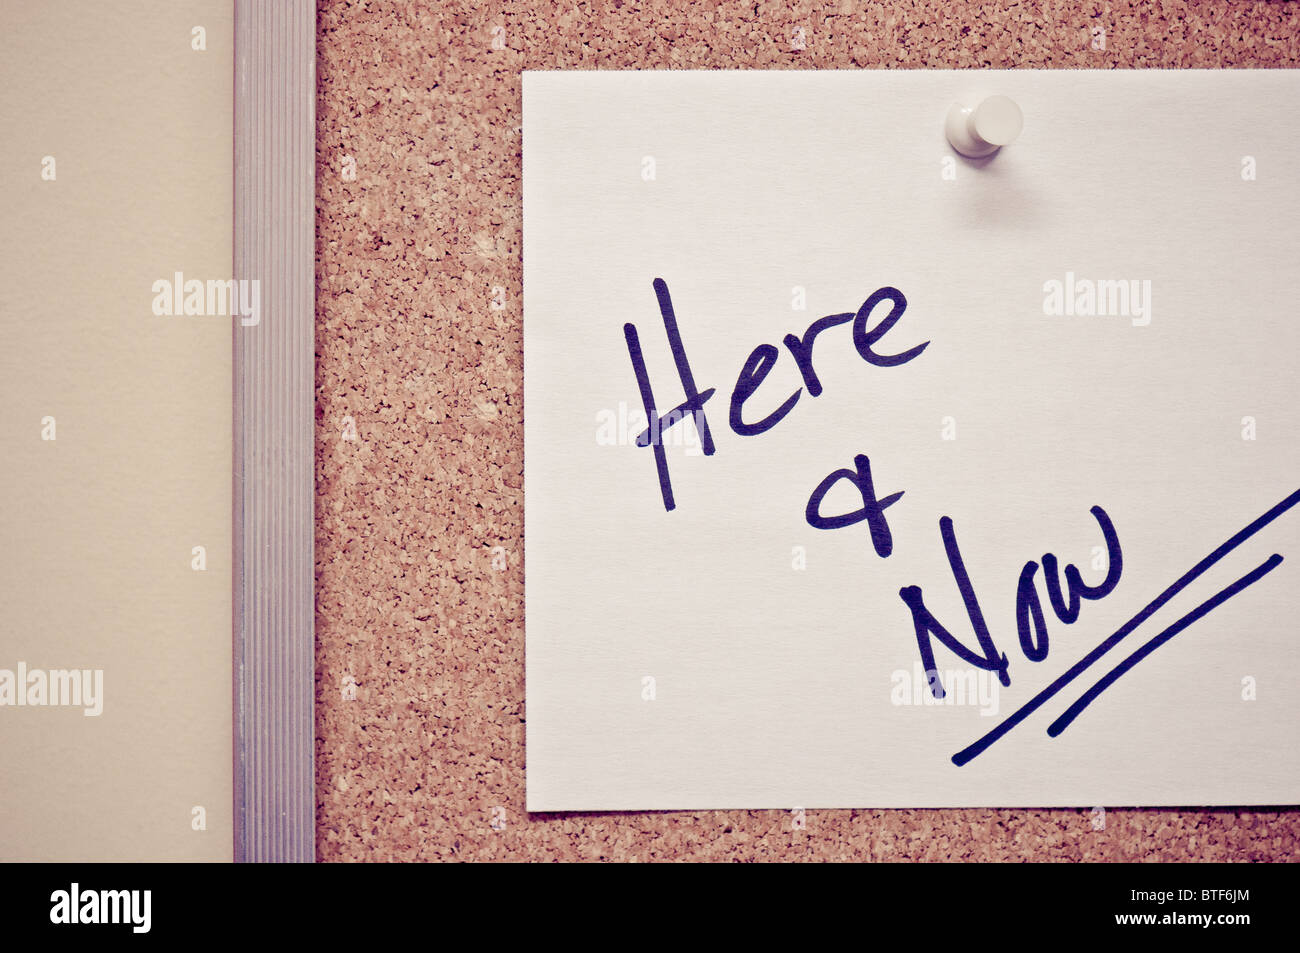 Note on bulletin board - Stock Image